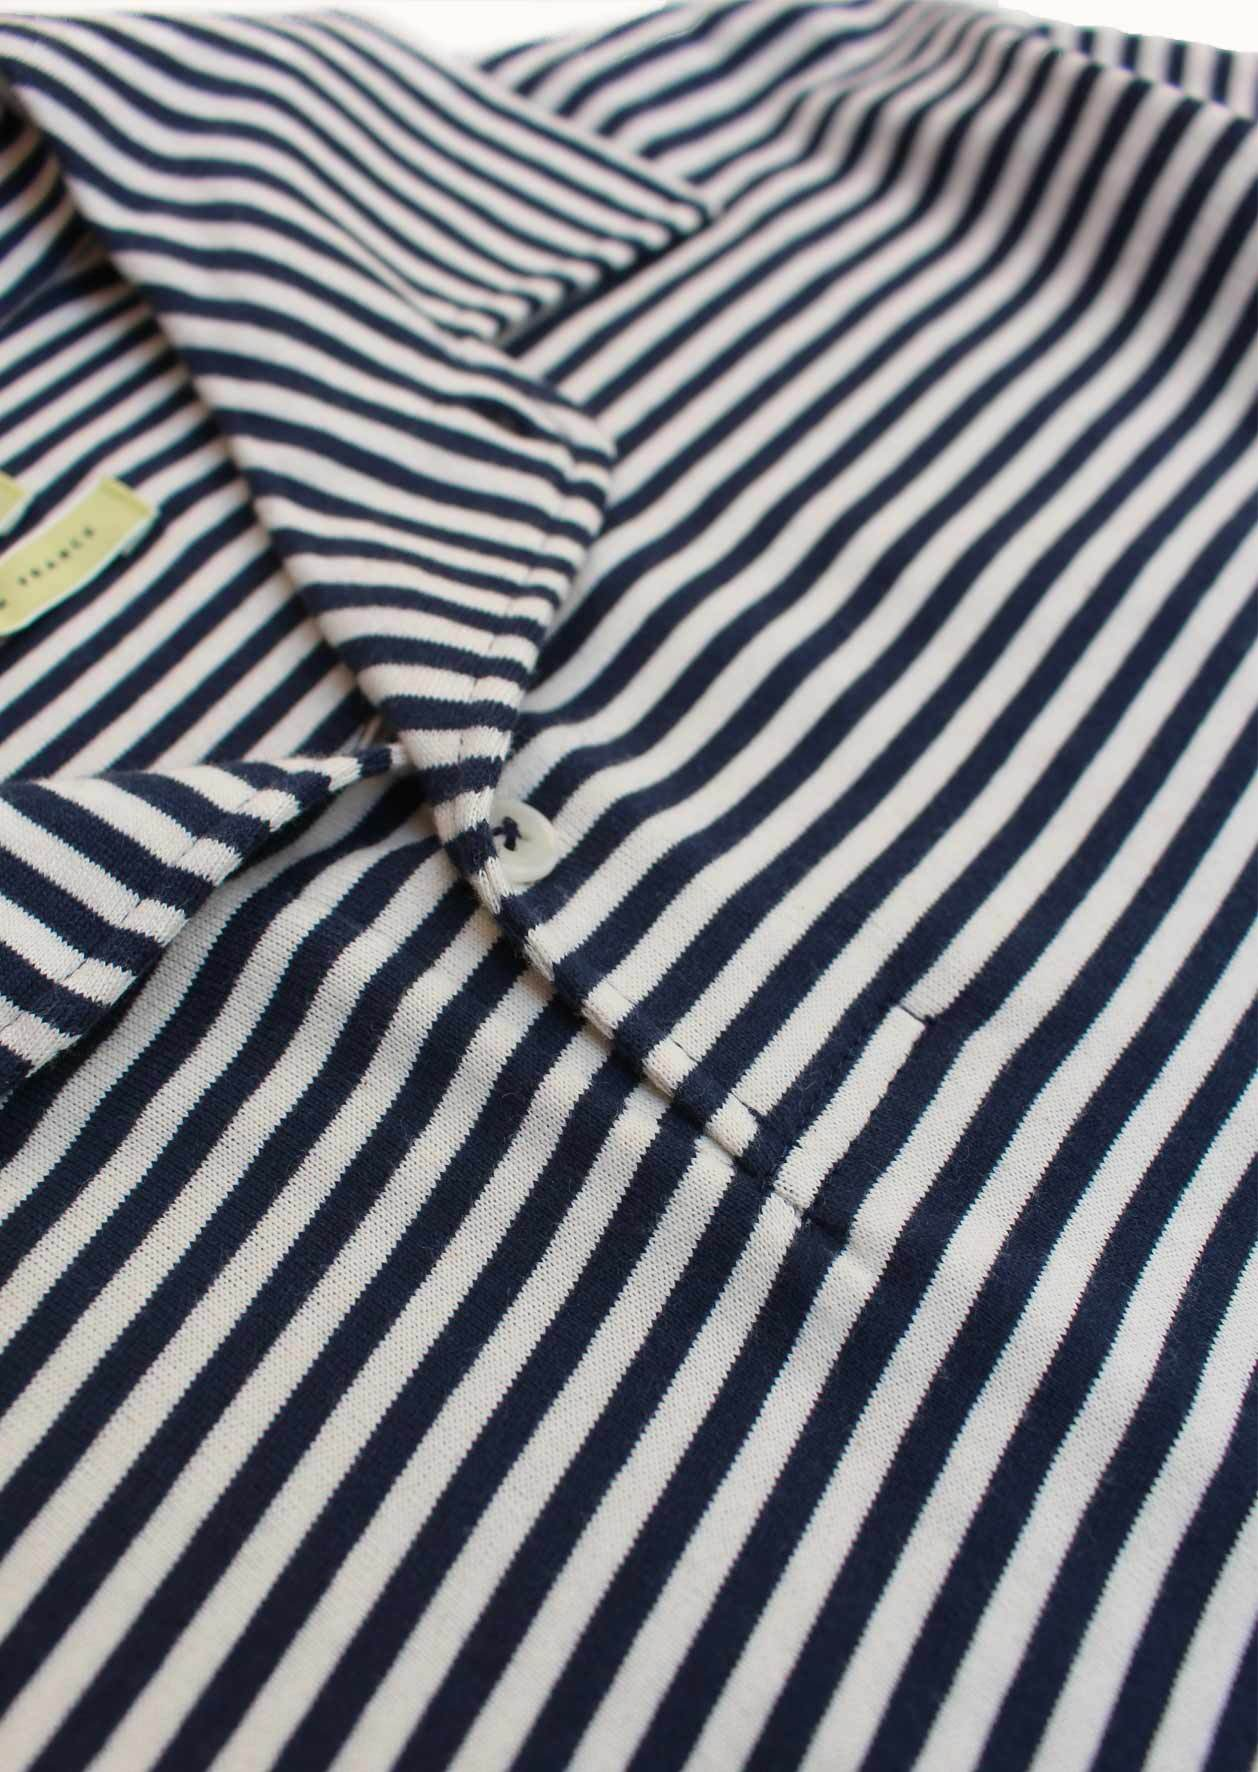 Short sleeve polo shirt - Japanese cotton jersey - Navy stripes - De Bonne Facture